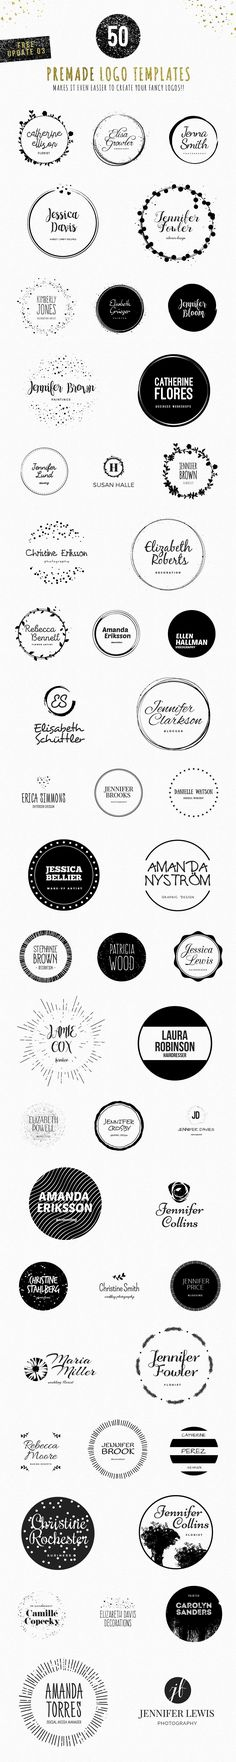 Feminine Logo Creator Circle Edition • Available here → https://creativemarket.com/WornOutMedia/395805-Feminine-Logo-Creator-Circle-Edition?u=pxcr